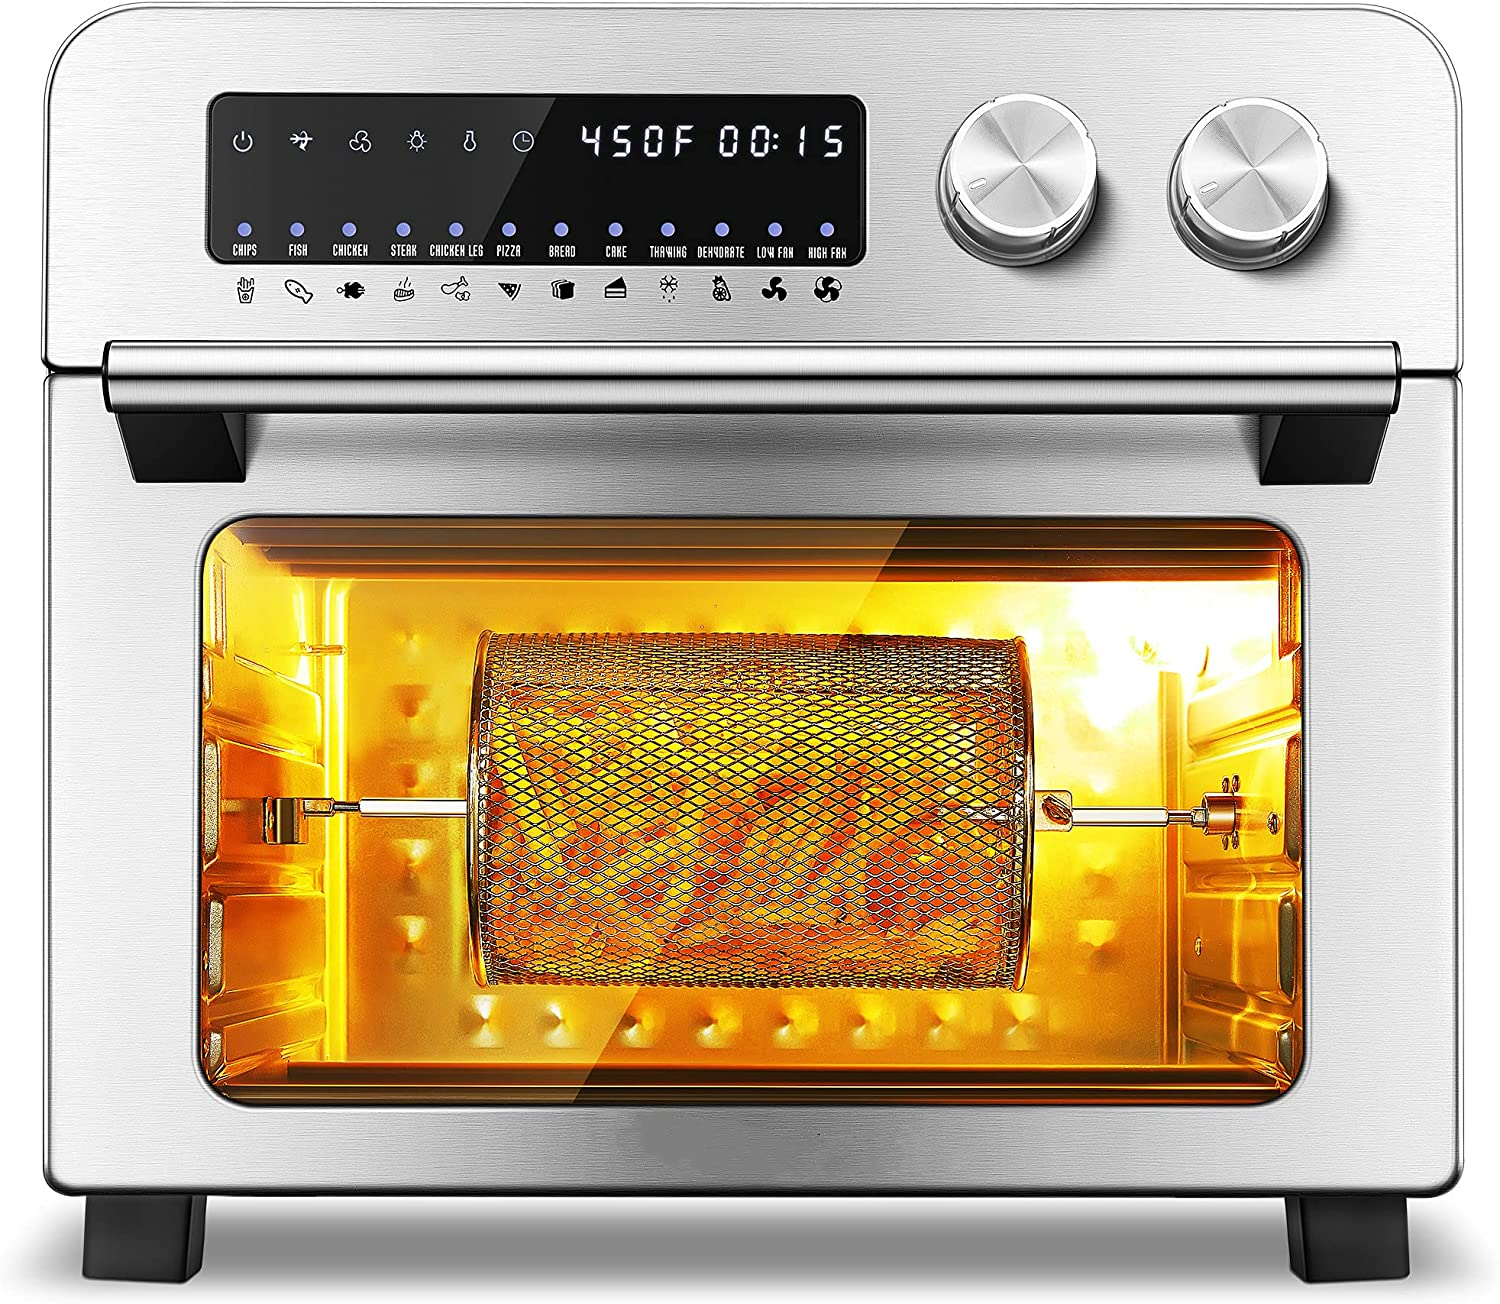 Air Fryer Toaster Oven, 1700W Large Digital LED Screen Convection Oven 24 QT Smart Air Fryer Oven for Roast Broil Bake Dehydrate, Extra Oven Gloves and 100 Recipes Included